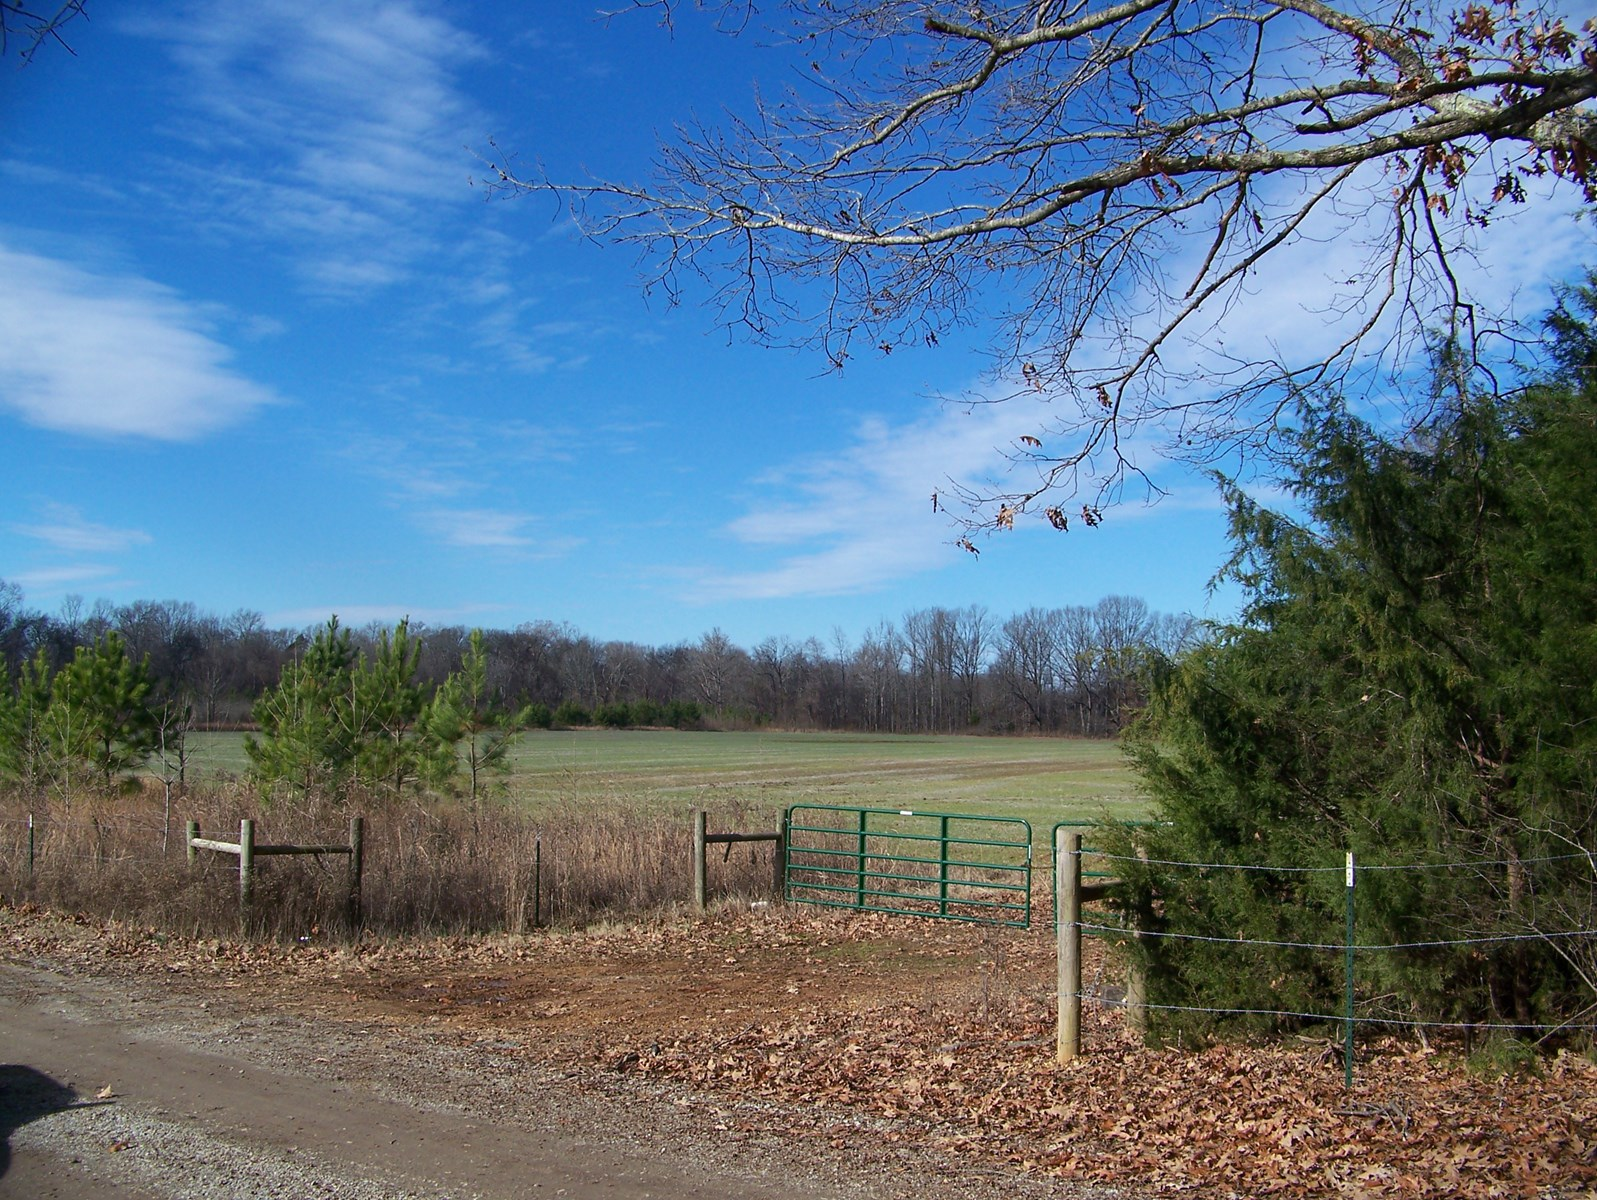 INDIAN CREEK LAND FOR SALE WITH CREEK ROW CROP LAND HUNTING